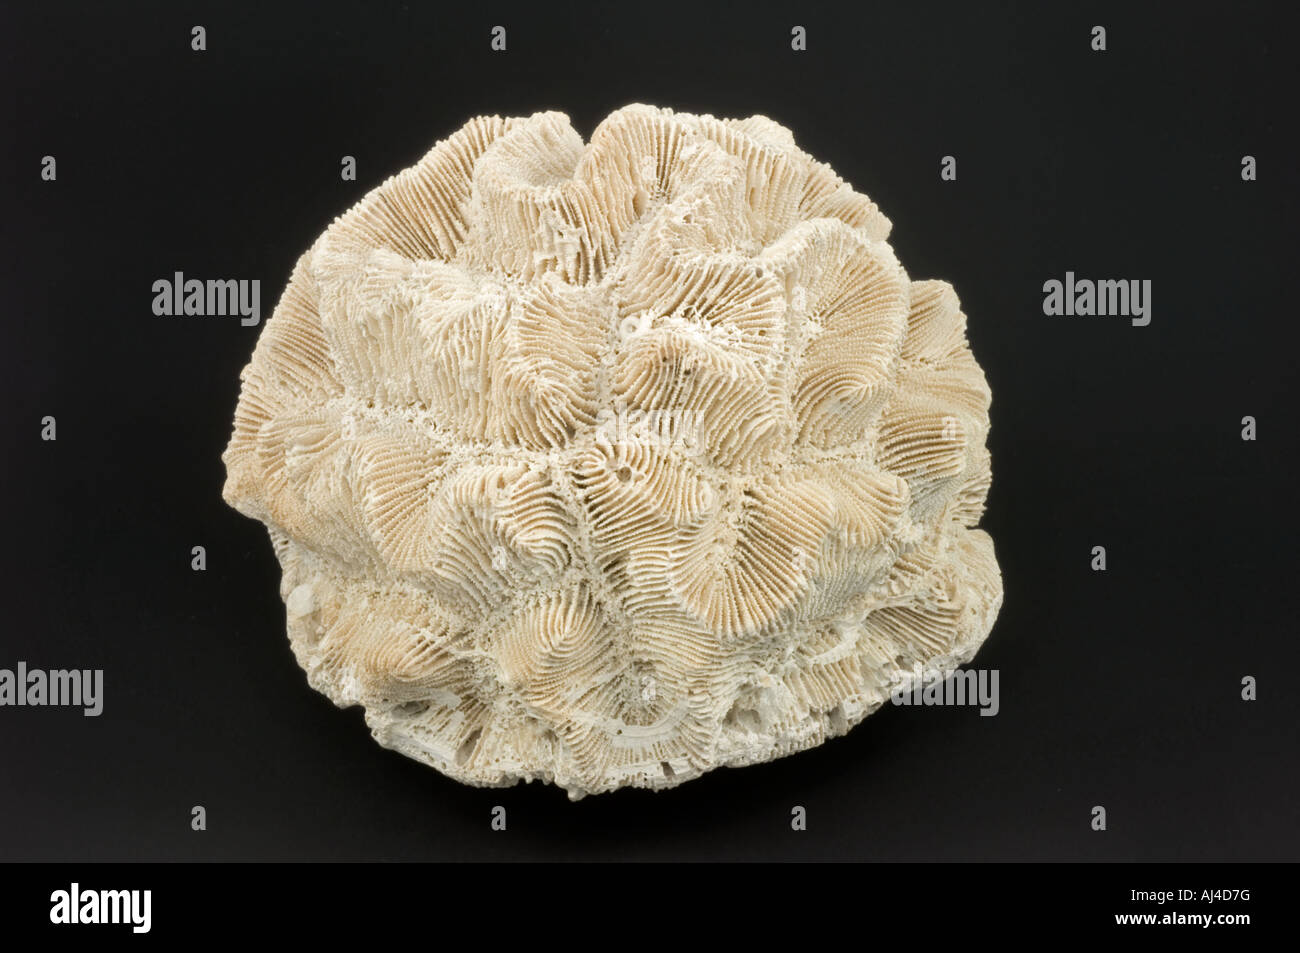 Pliocene Rose Coral fossil - Stock Image